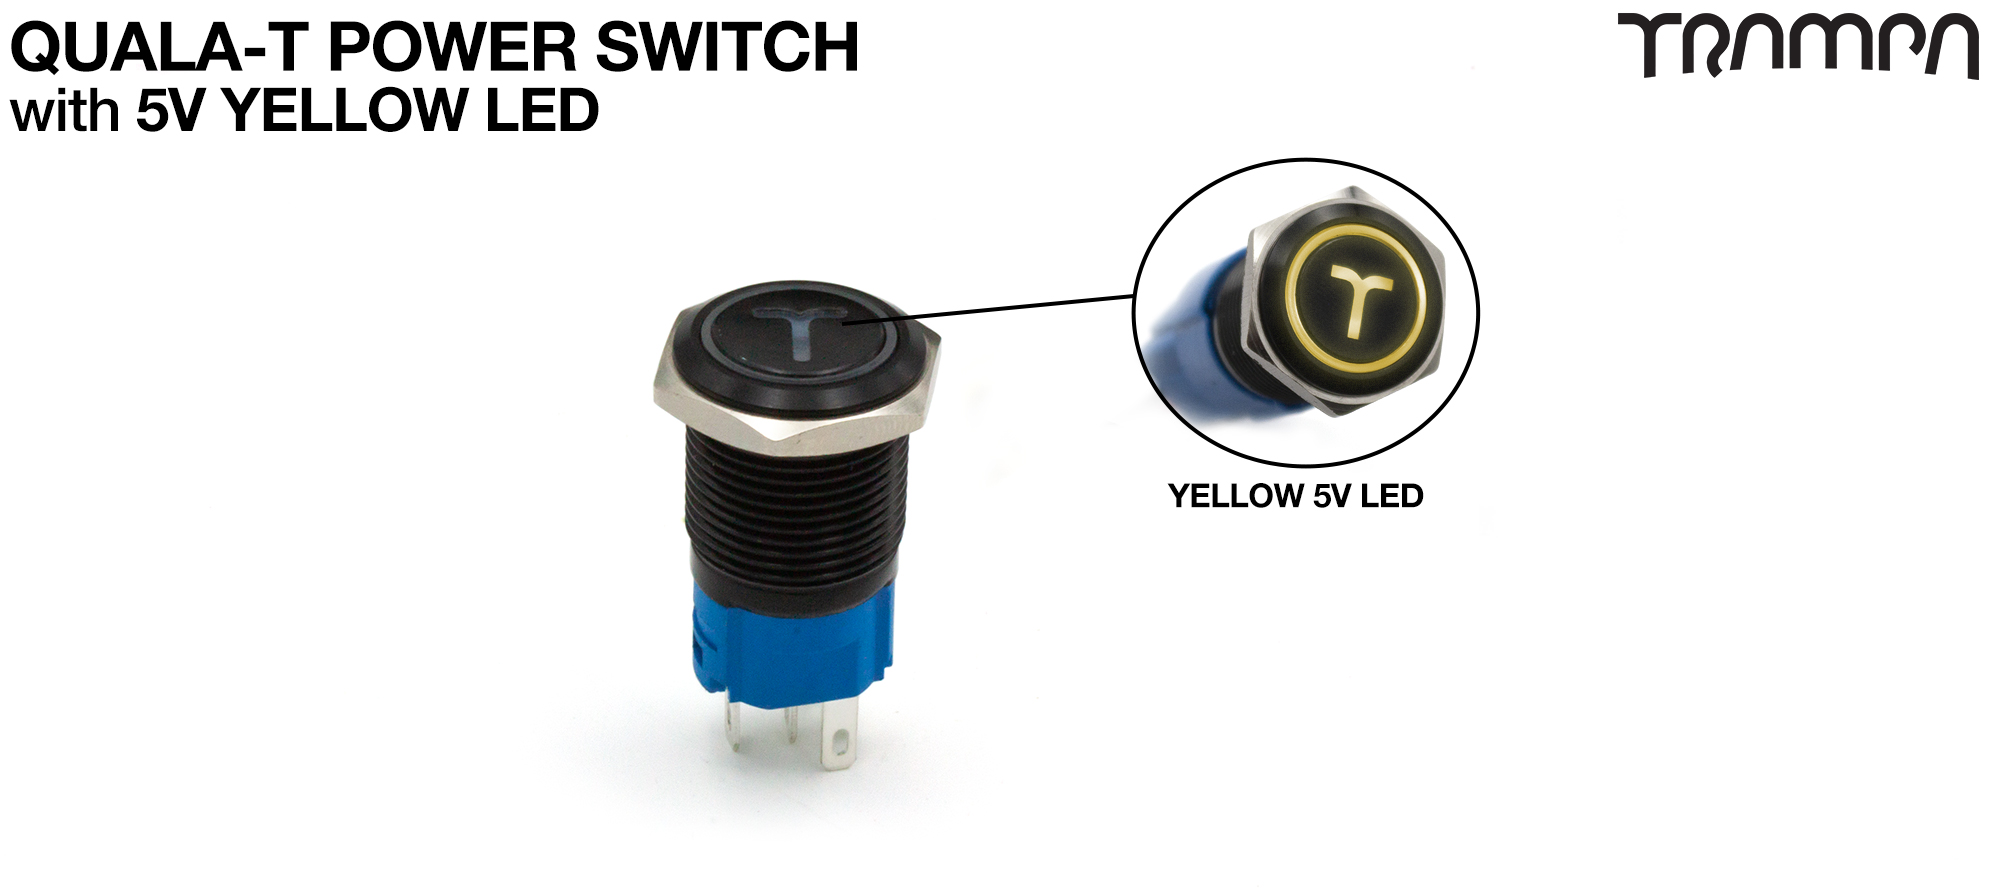 I'd like a YELLOW LED power switch